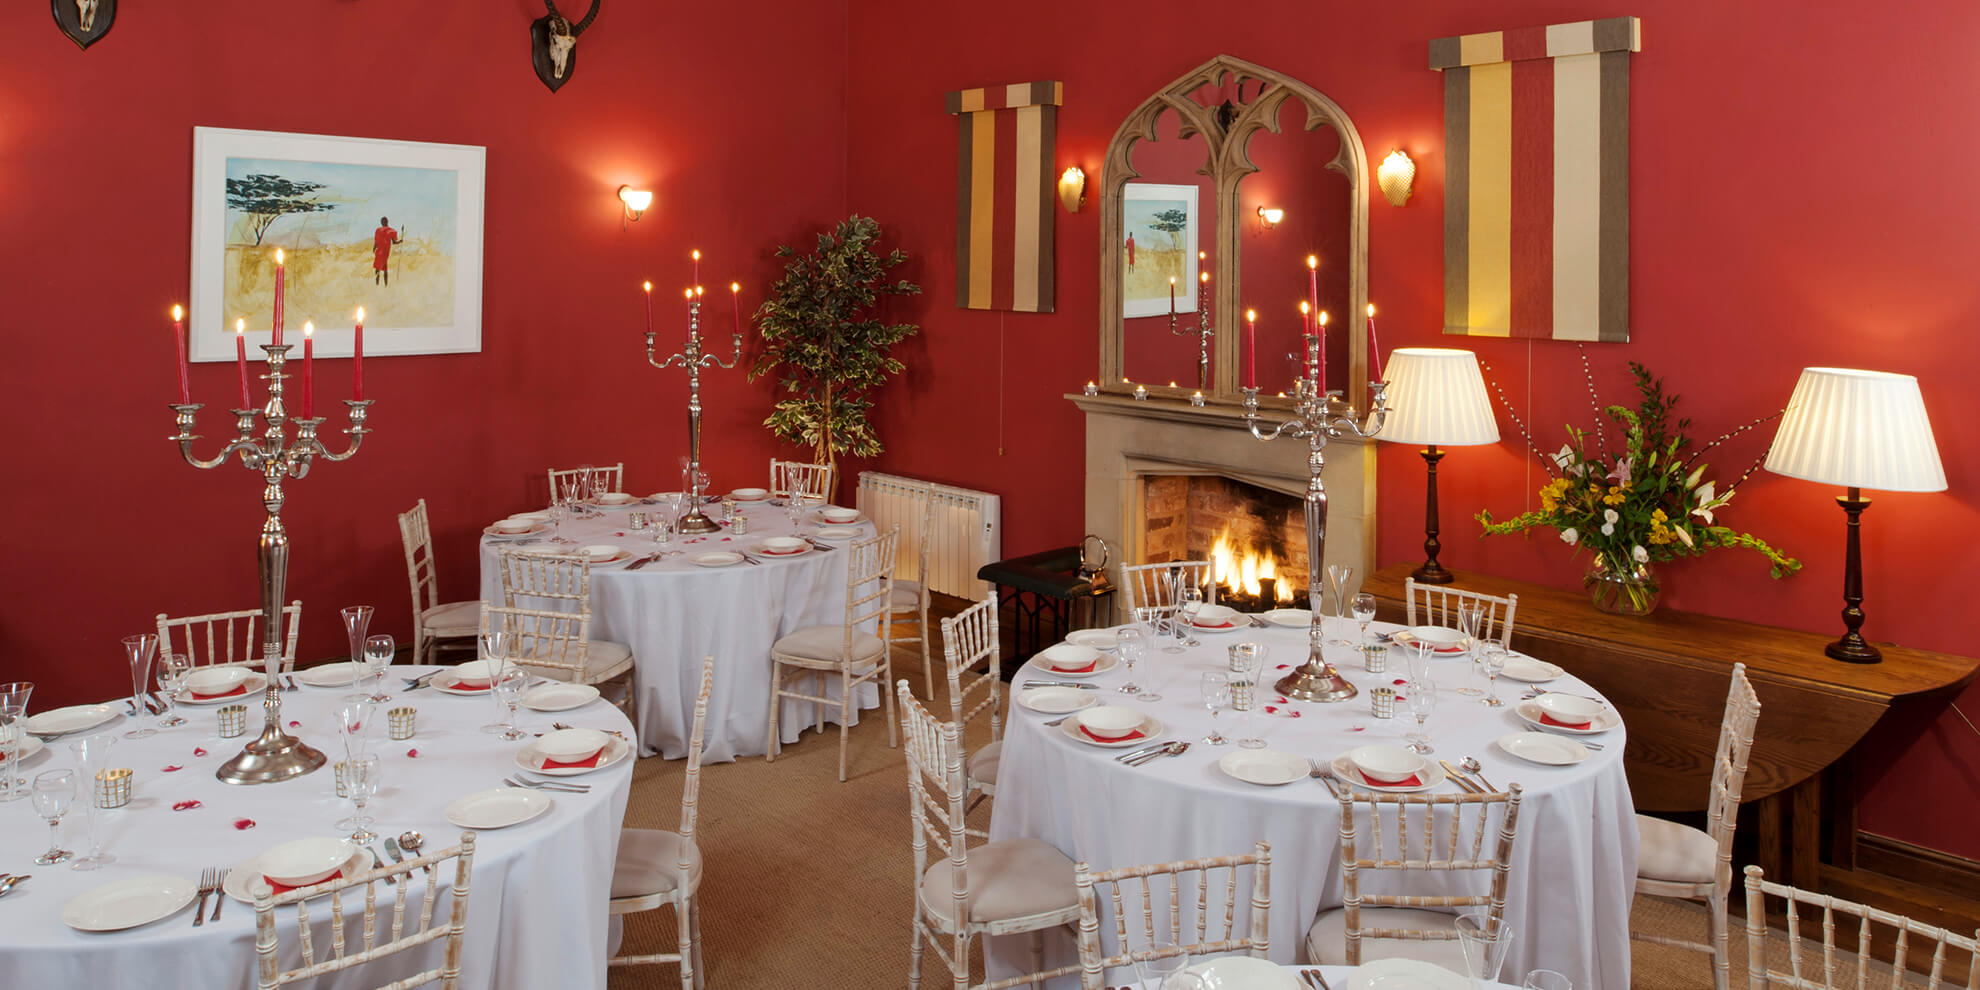 Combermere Abbey is perfect for those looking for conference venues in Cheshire or Shropshire